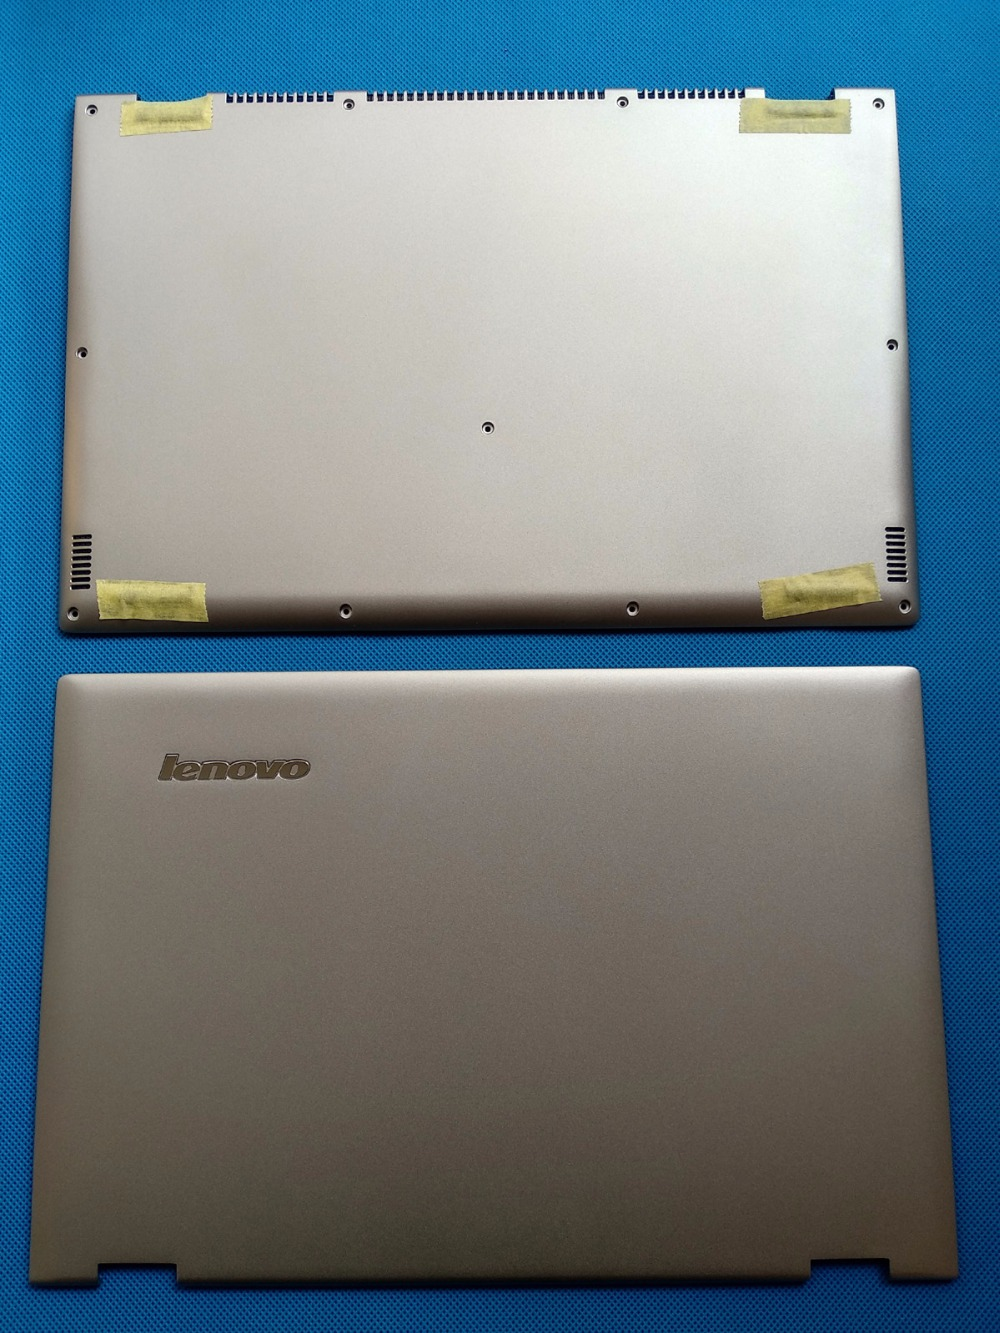 New Original Lenovo Ideapad Yoga 2 Pro 13 LCD Back Rear Lid Cover+ Base Cover Bottom Lower Case AM0S9000310 AM0S9000210 silvery new original laptop back cover bottom shell base lid d case for lenovo ideapad flex2 14 flex 2 14 white r black red color